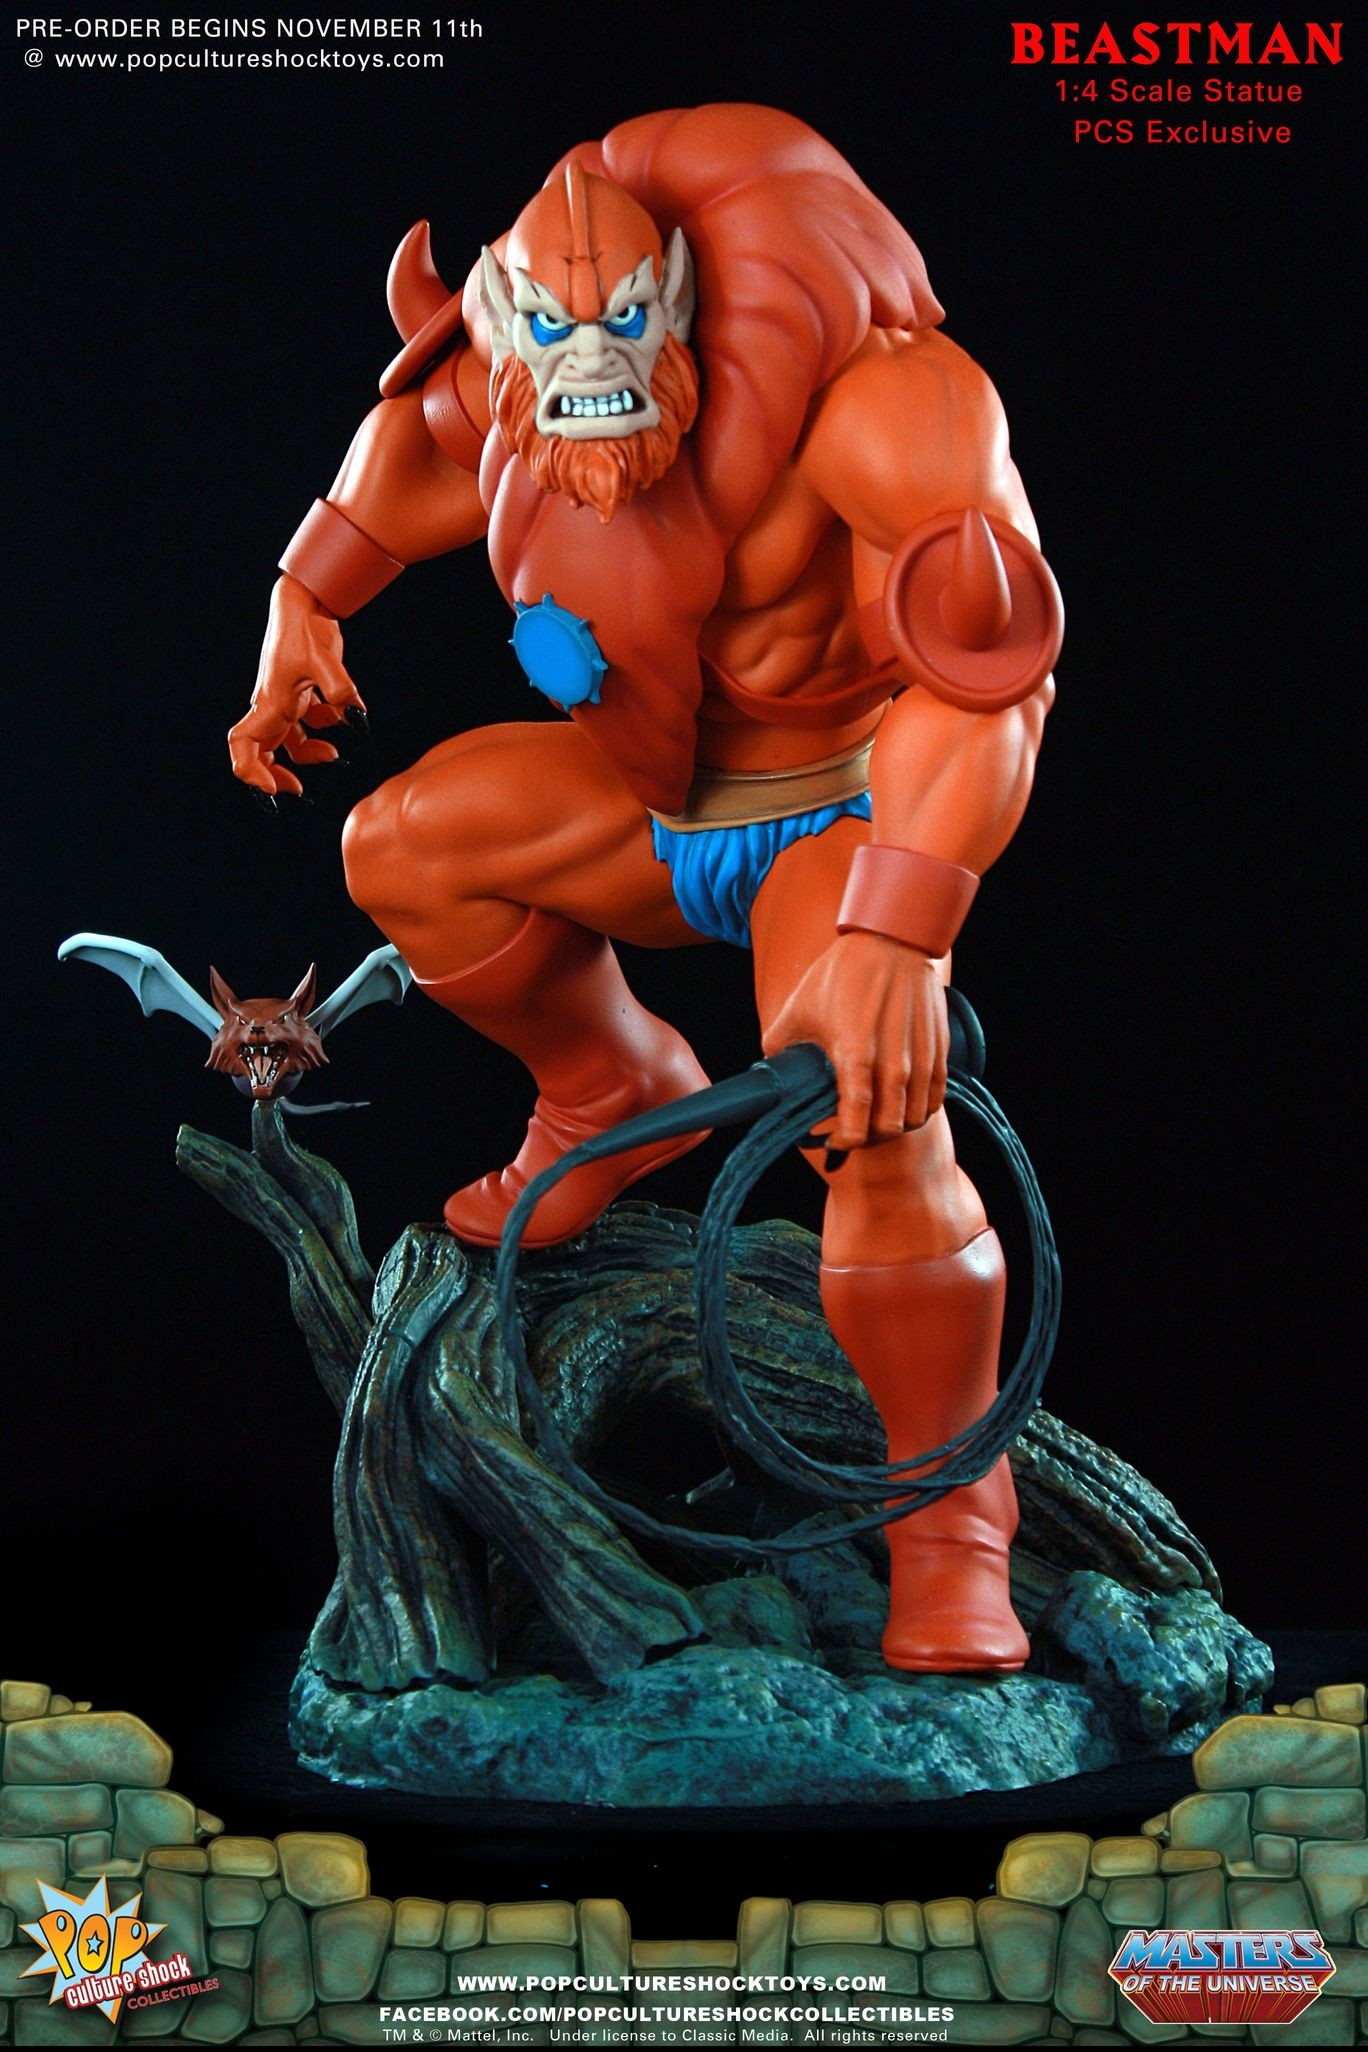 Alejandro pereira beastman exclusive edition motu pop culture shock 01